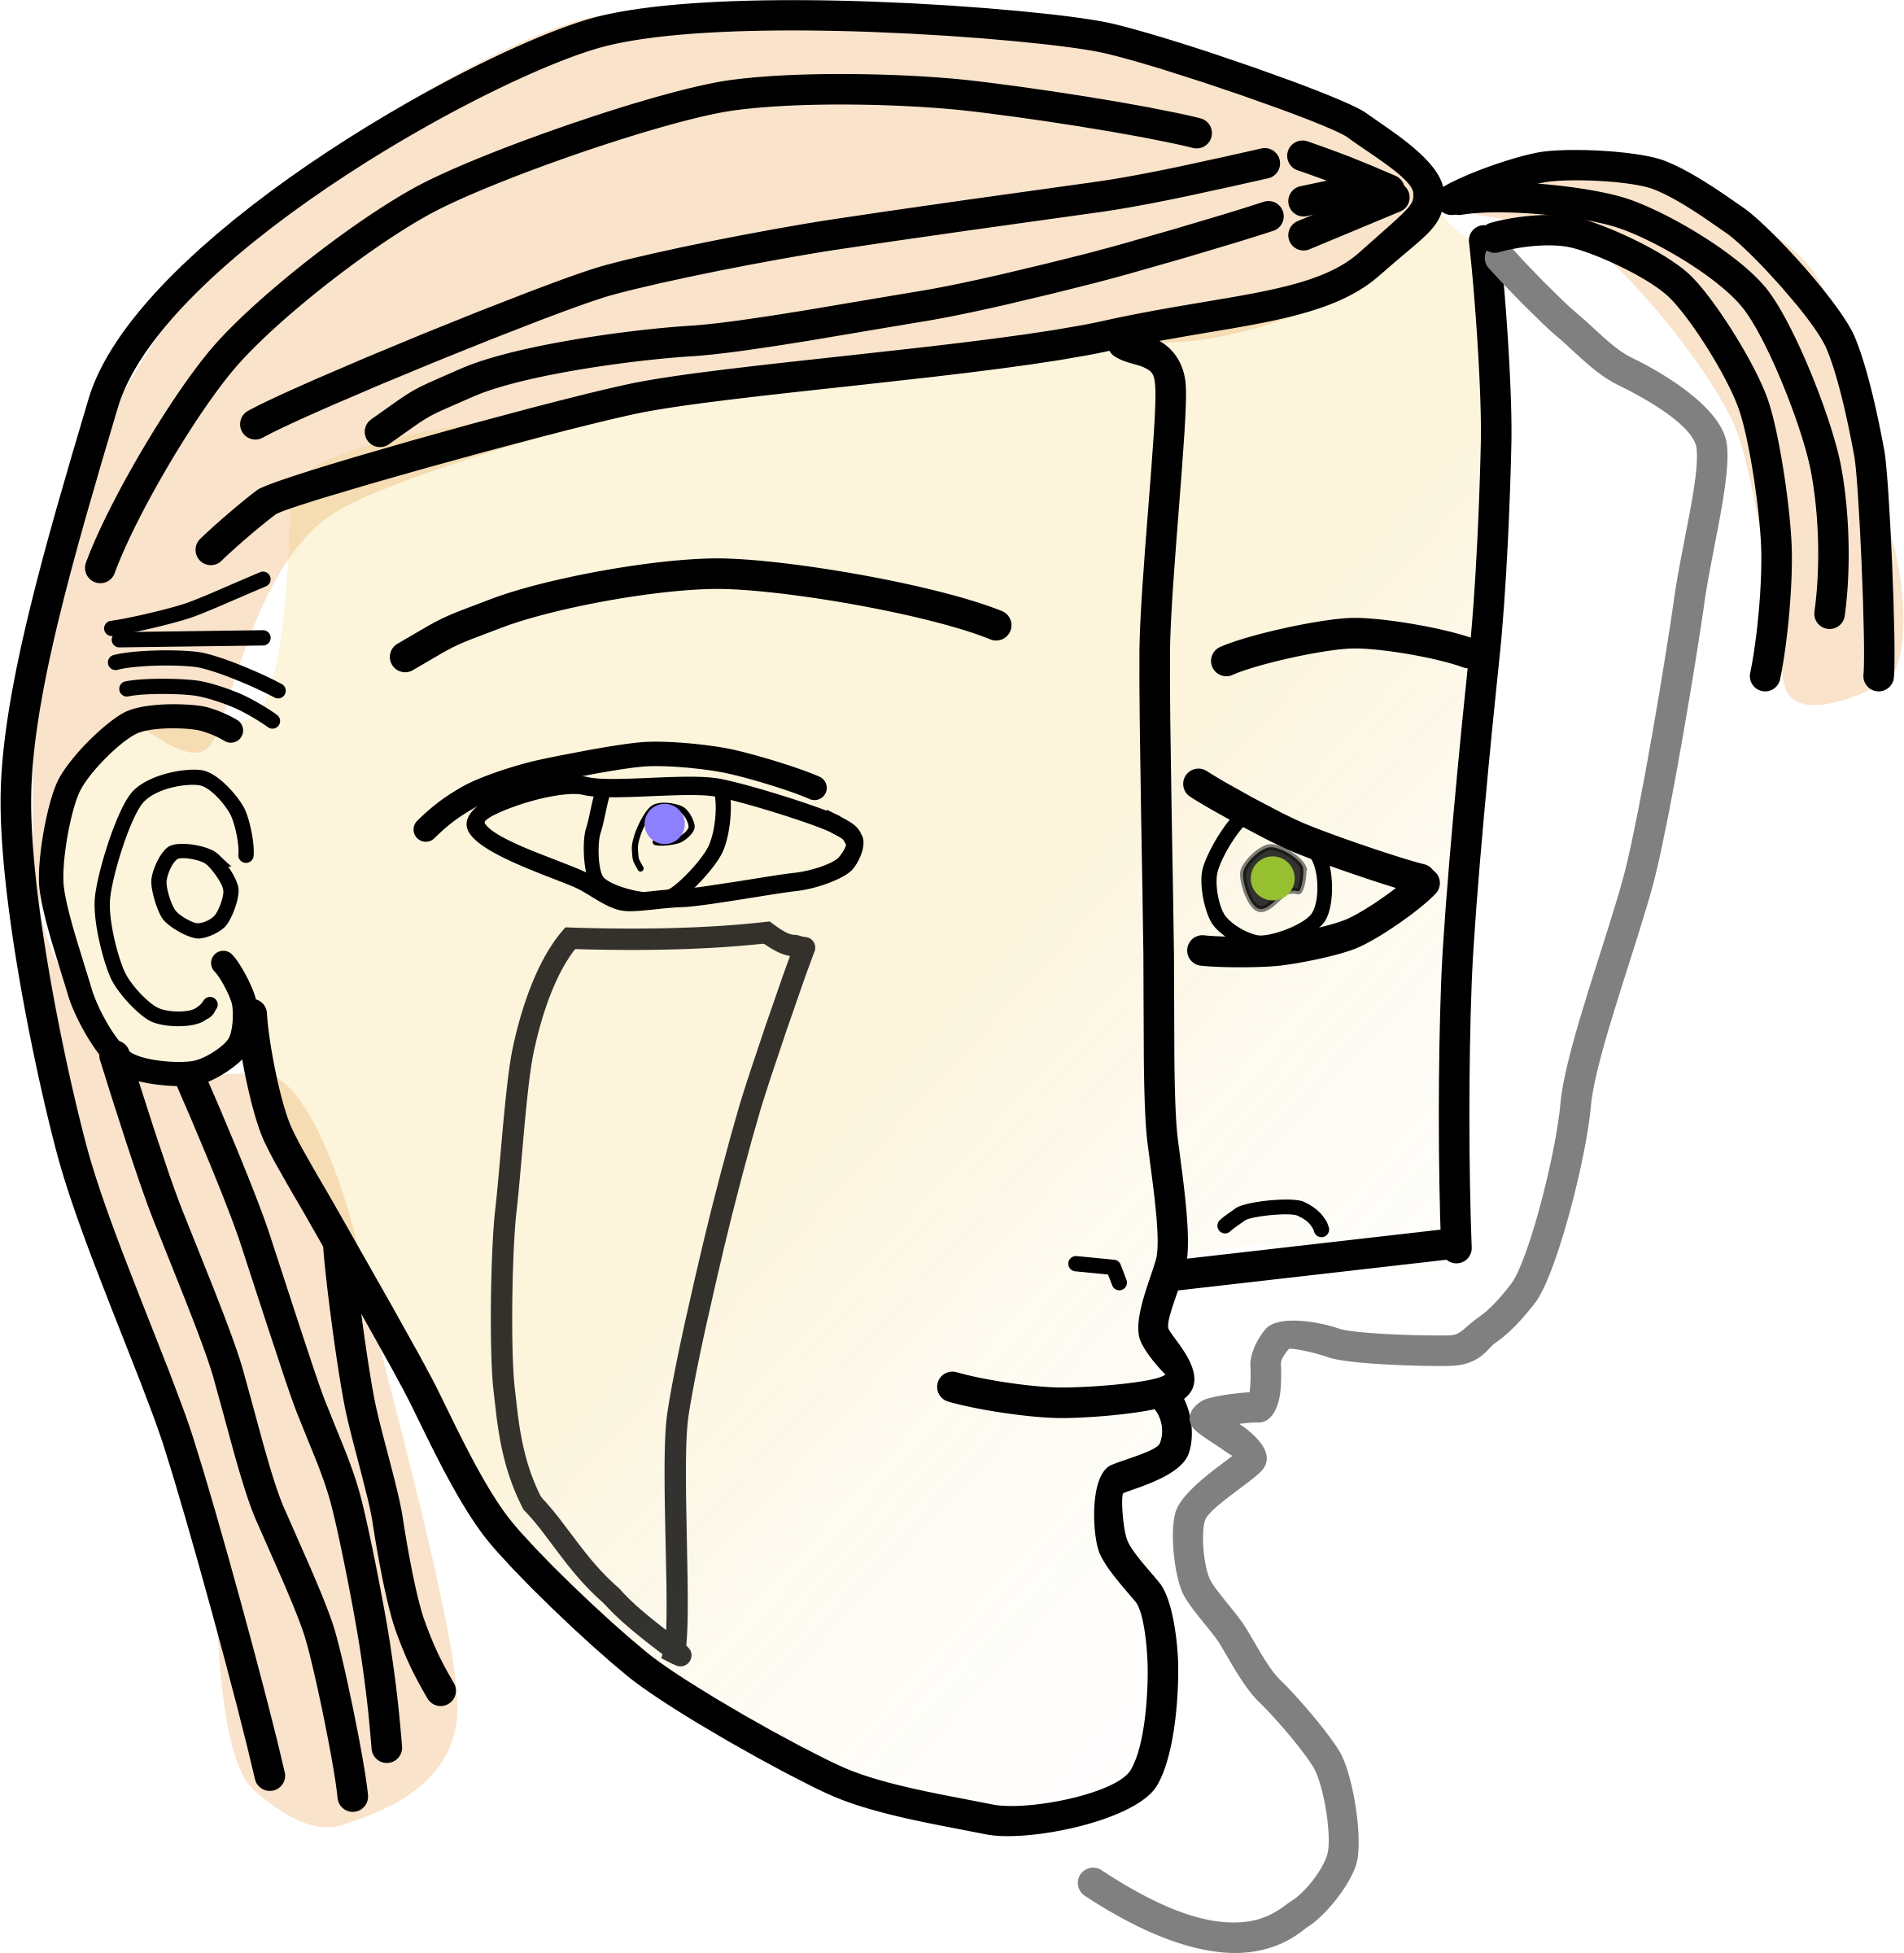 Cubism drawing face. Clipart cubist woman head